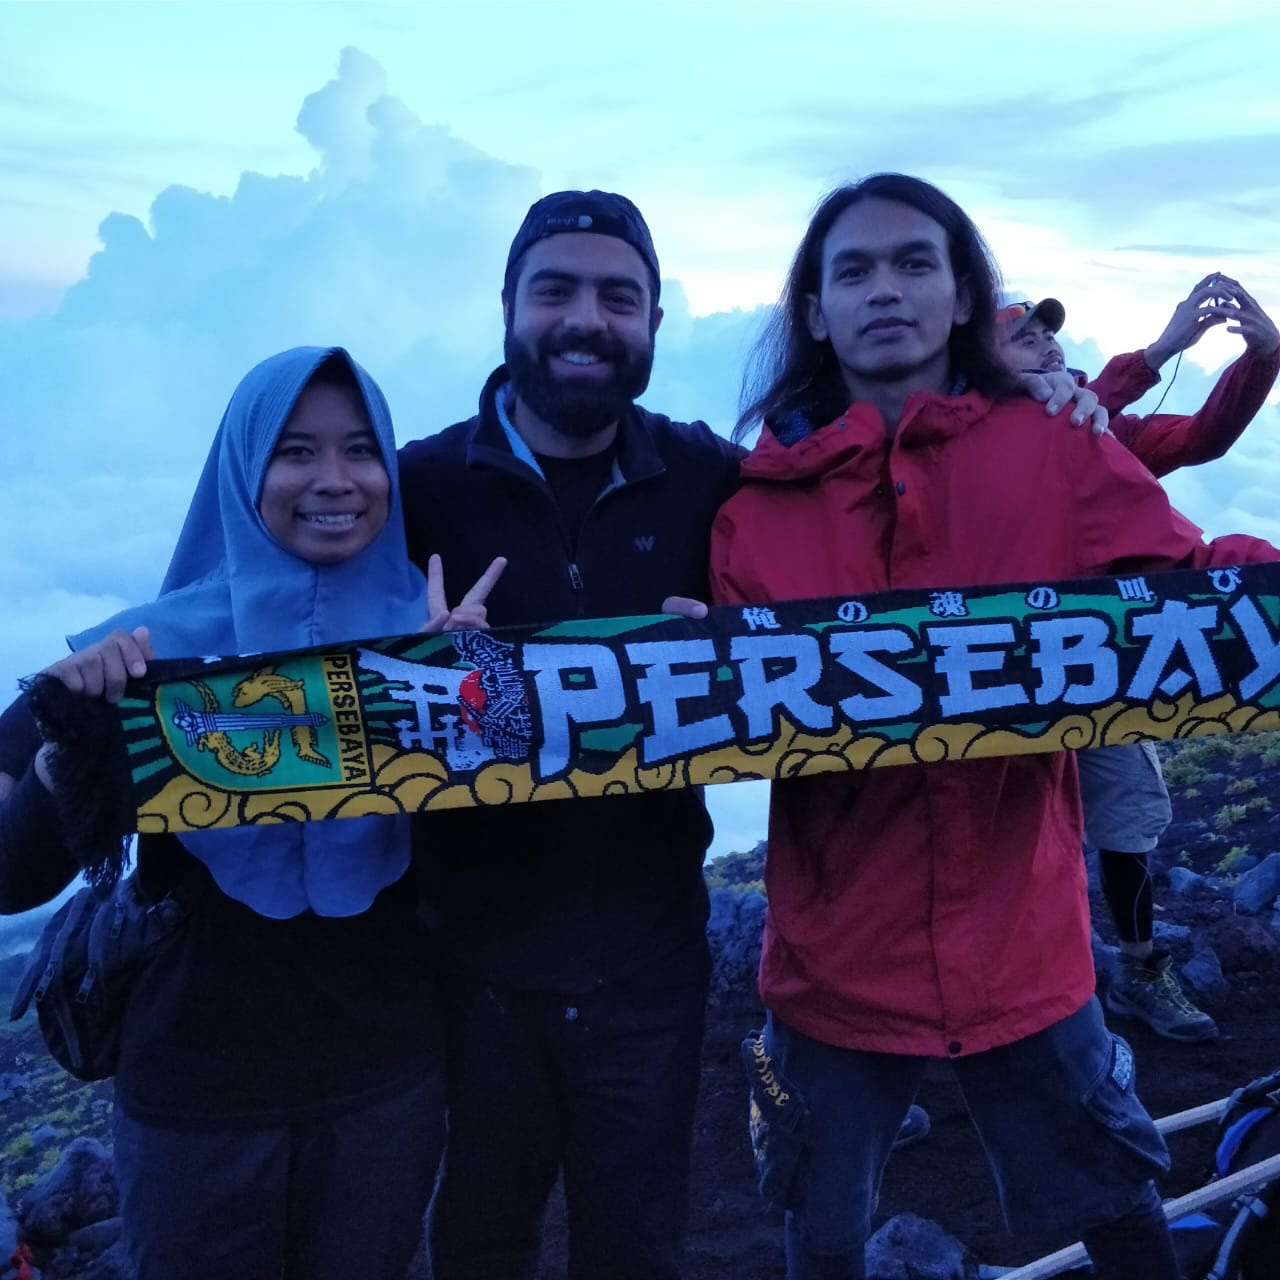 Fellow trekkers from Indonesia